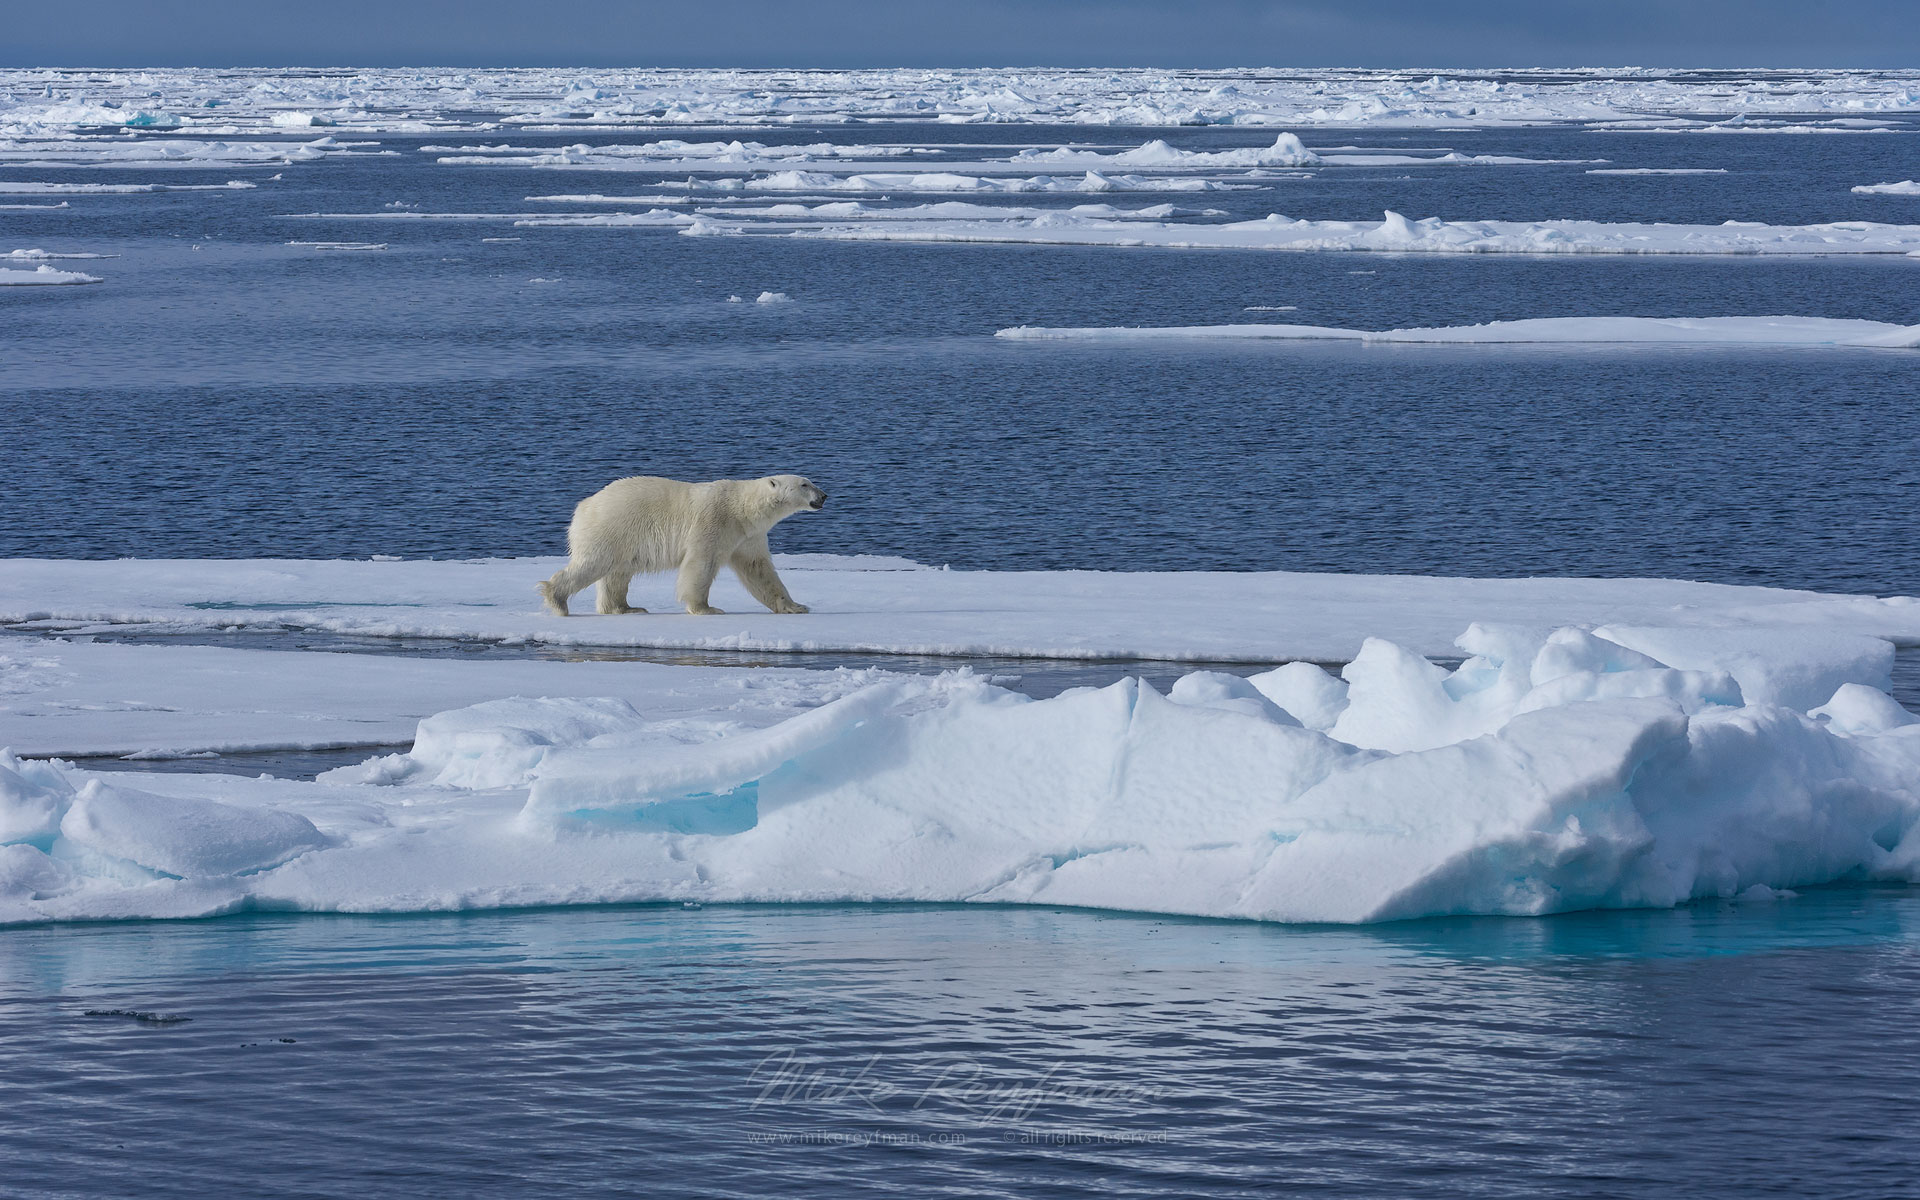 Polar bear walking on an ice floe in Svalbard, Norway. 81st parallel North. - Polar-Bears-Svalbard-Spitsbergen-Norway - Mike Reyfman Photography